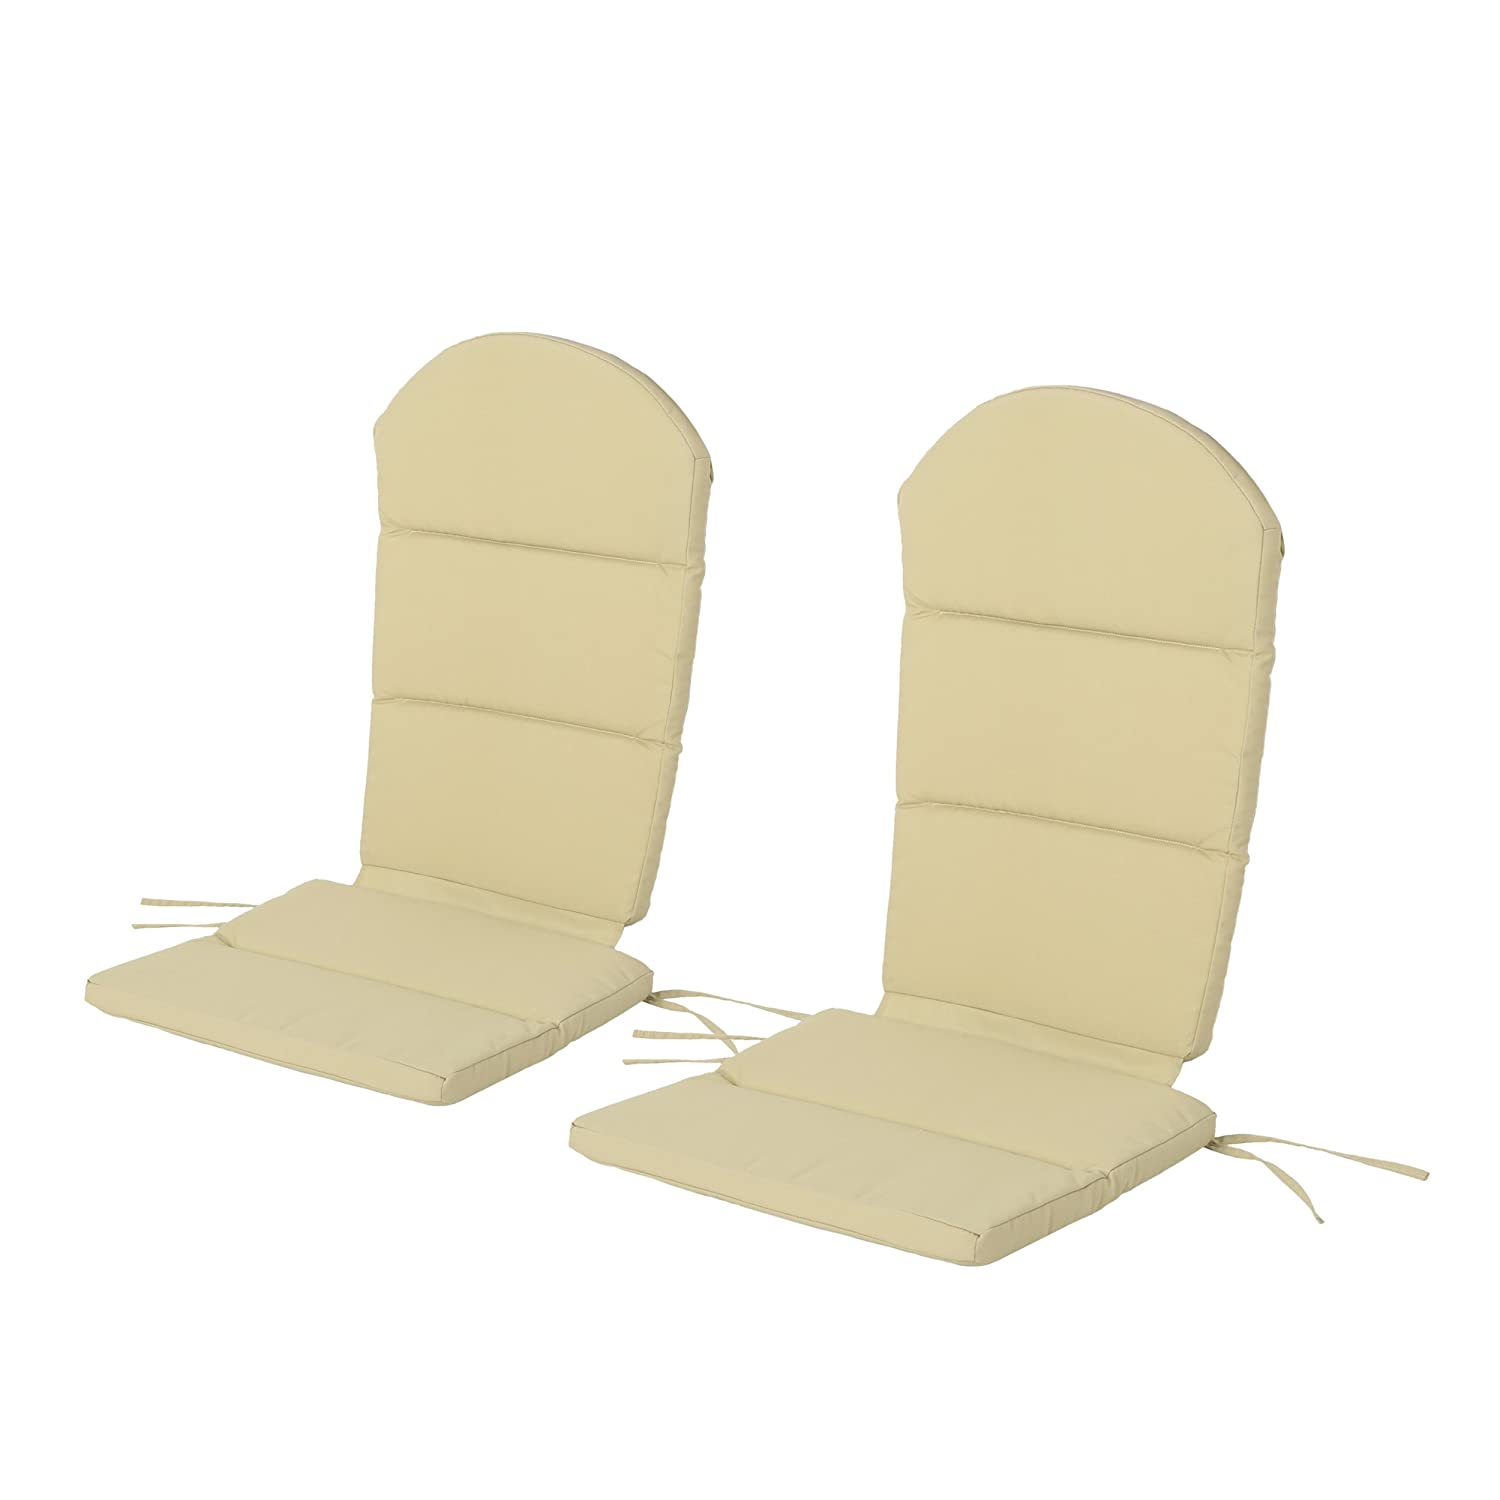 Christopher Knight Home 304637 Terry Outdoor Adirondack Chair Cushion (Set of 2), Khaki